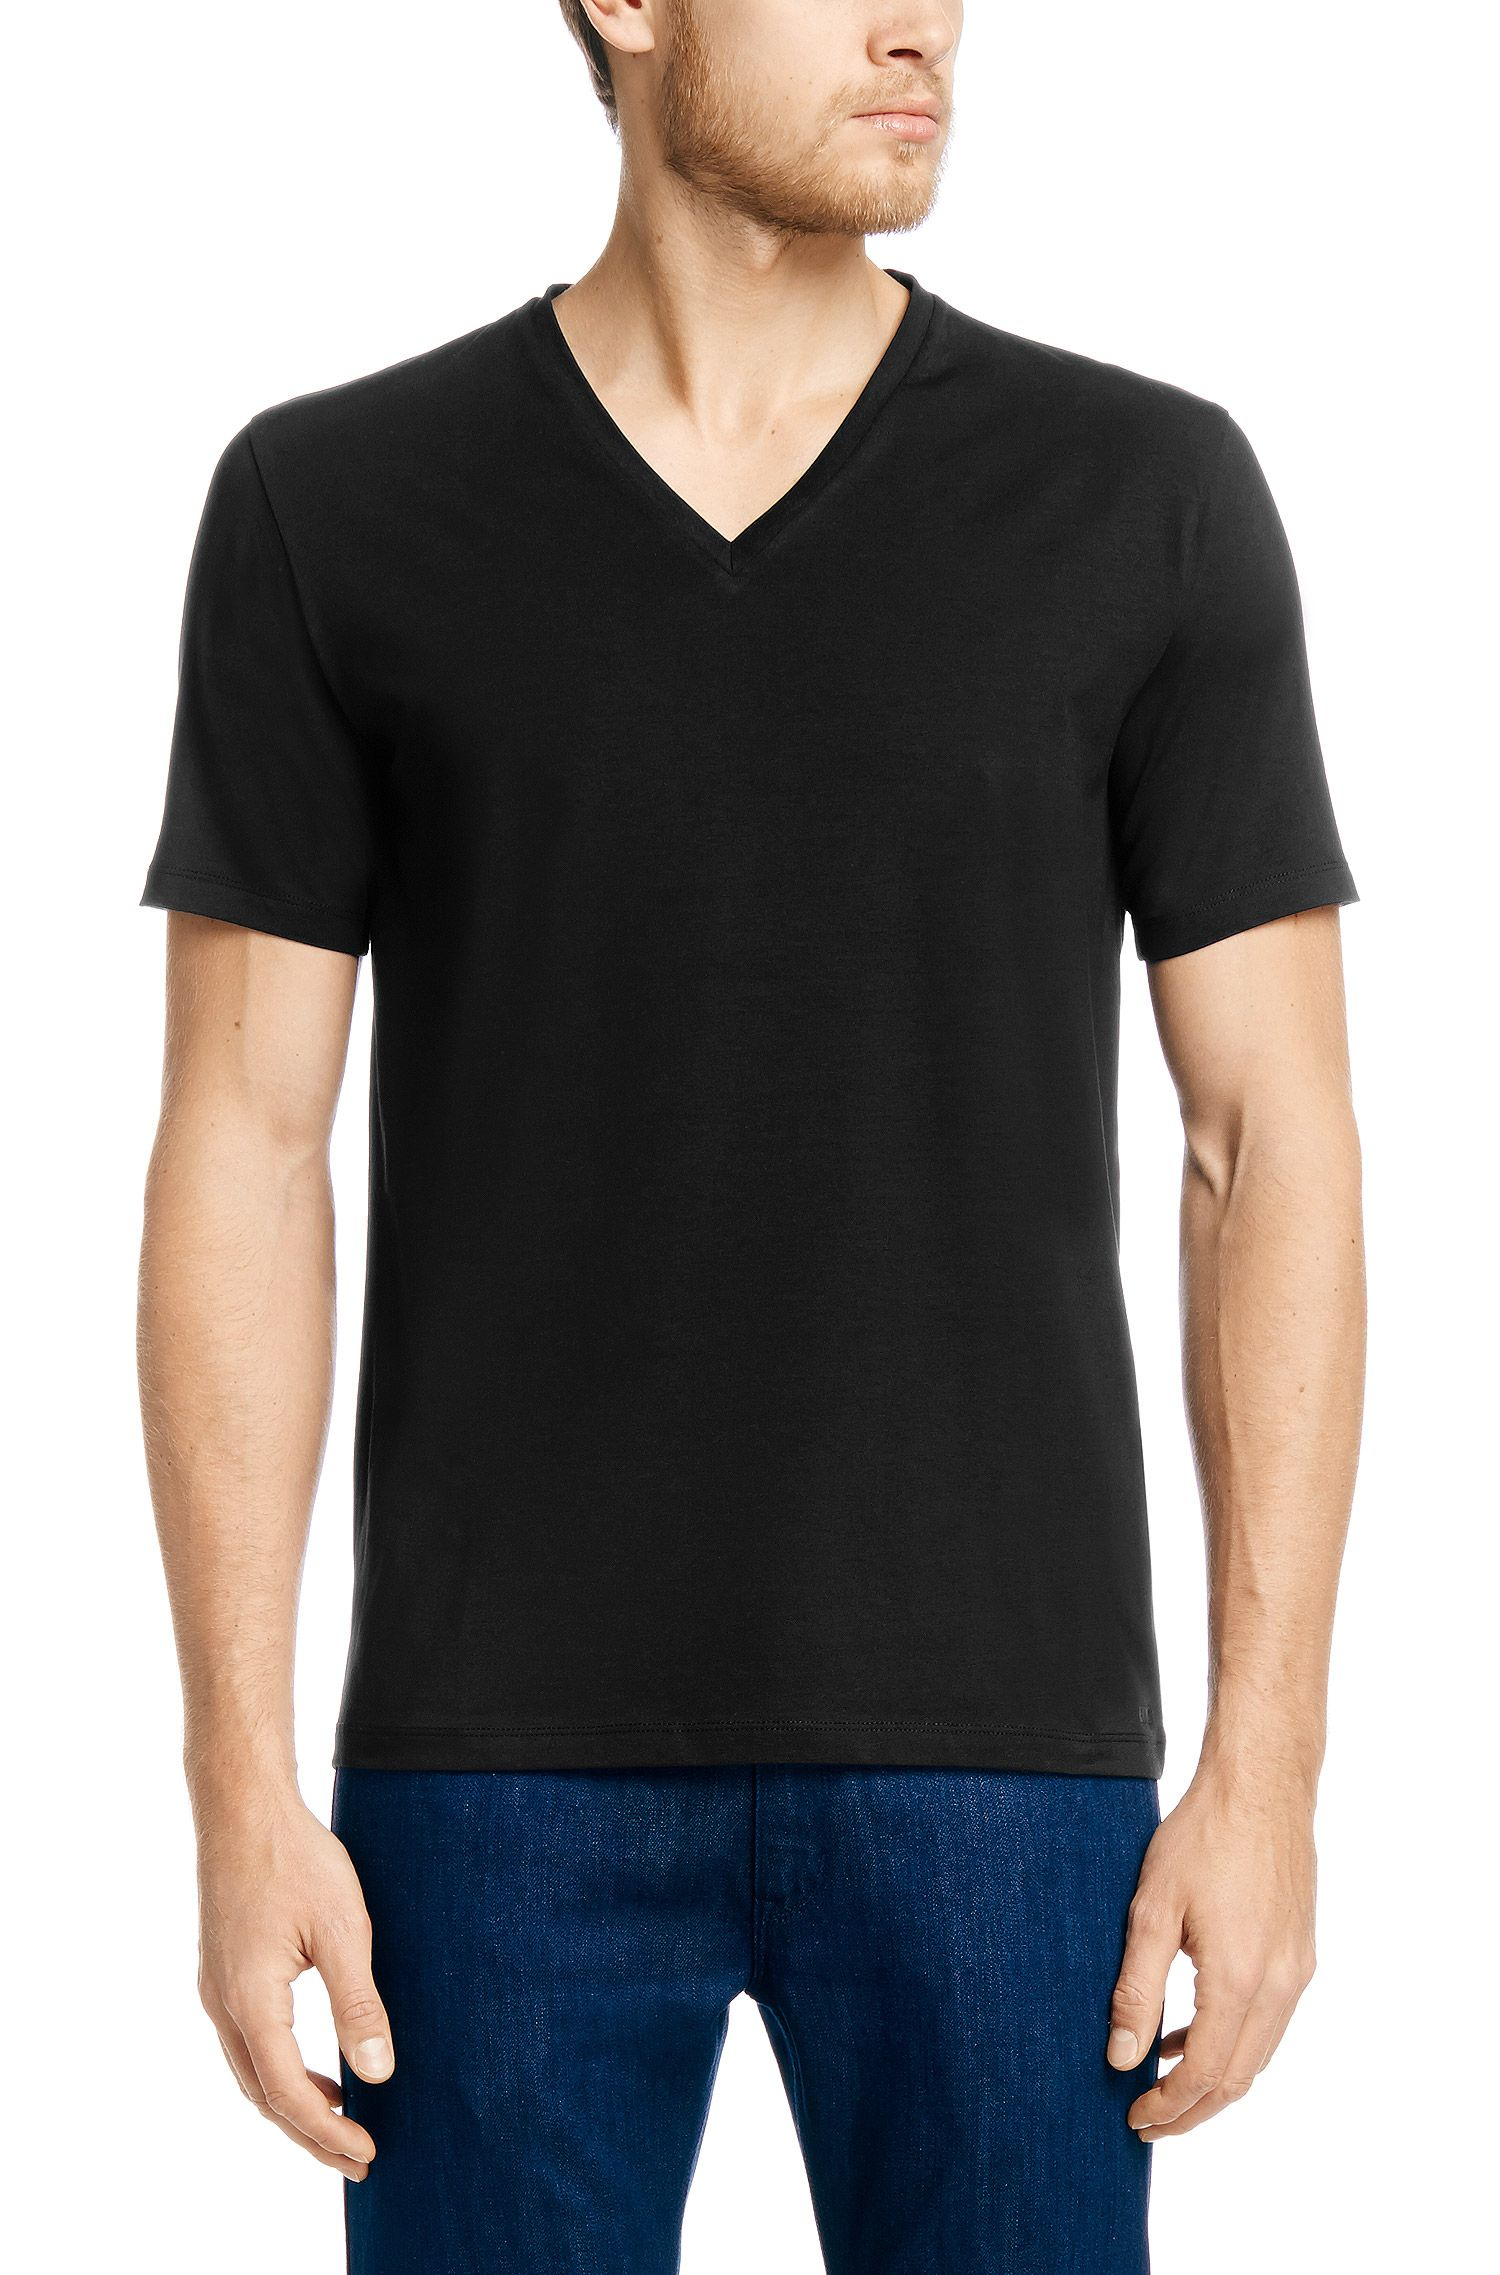 Stretch Cotton V-Neck T-Shirt | Dredosos